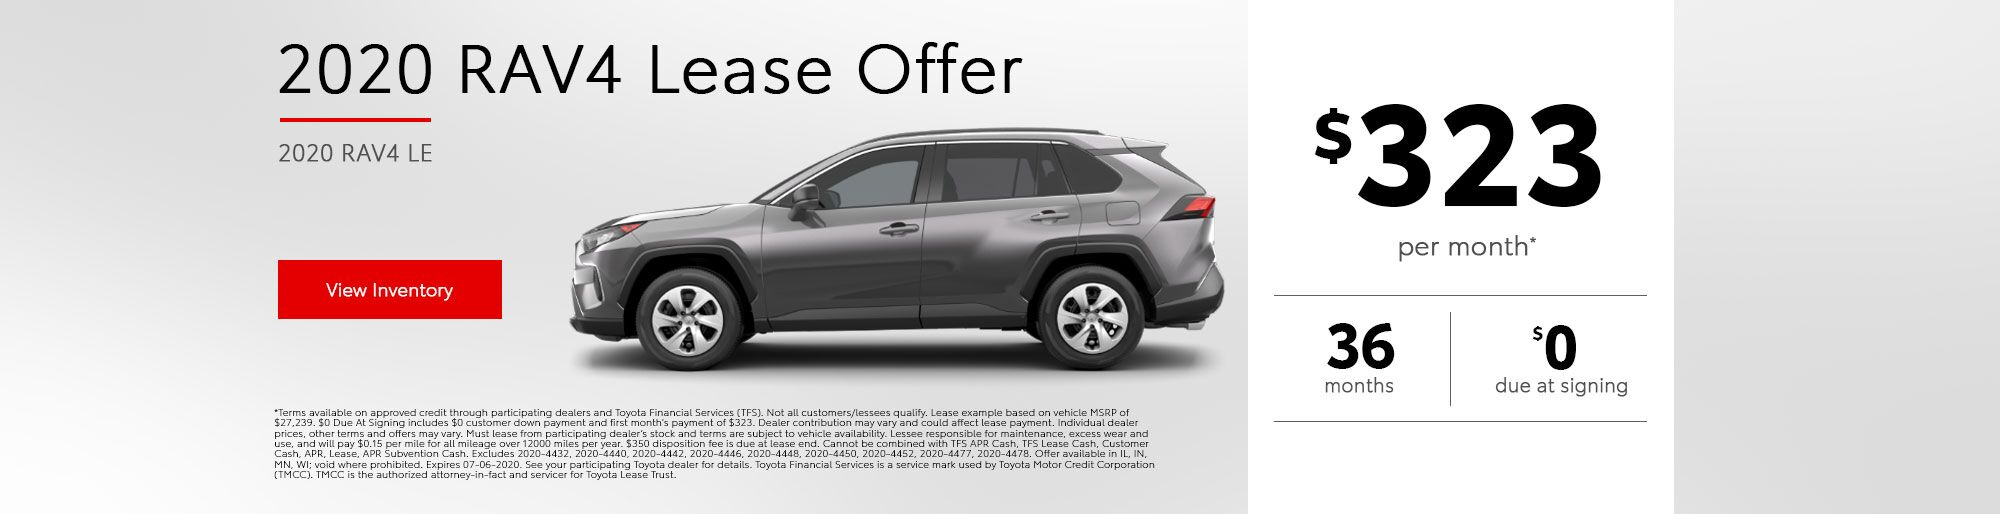 2020 Rav4 Lease Offer